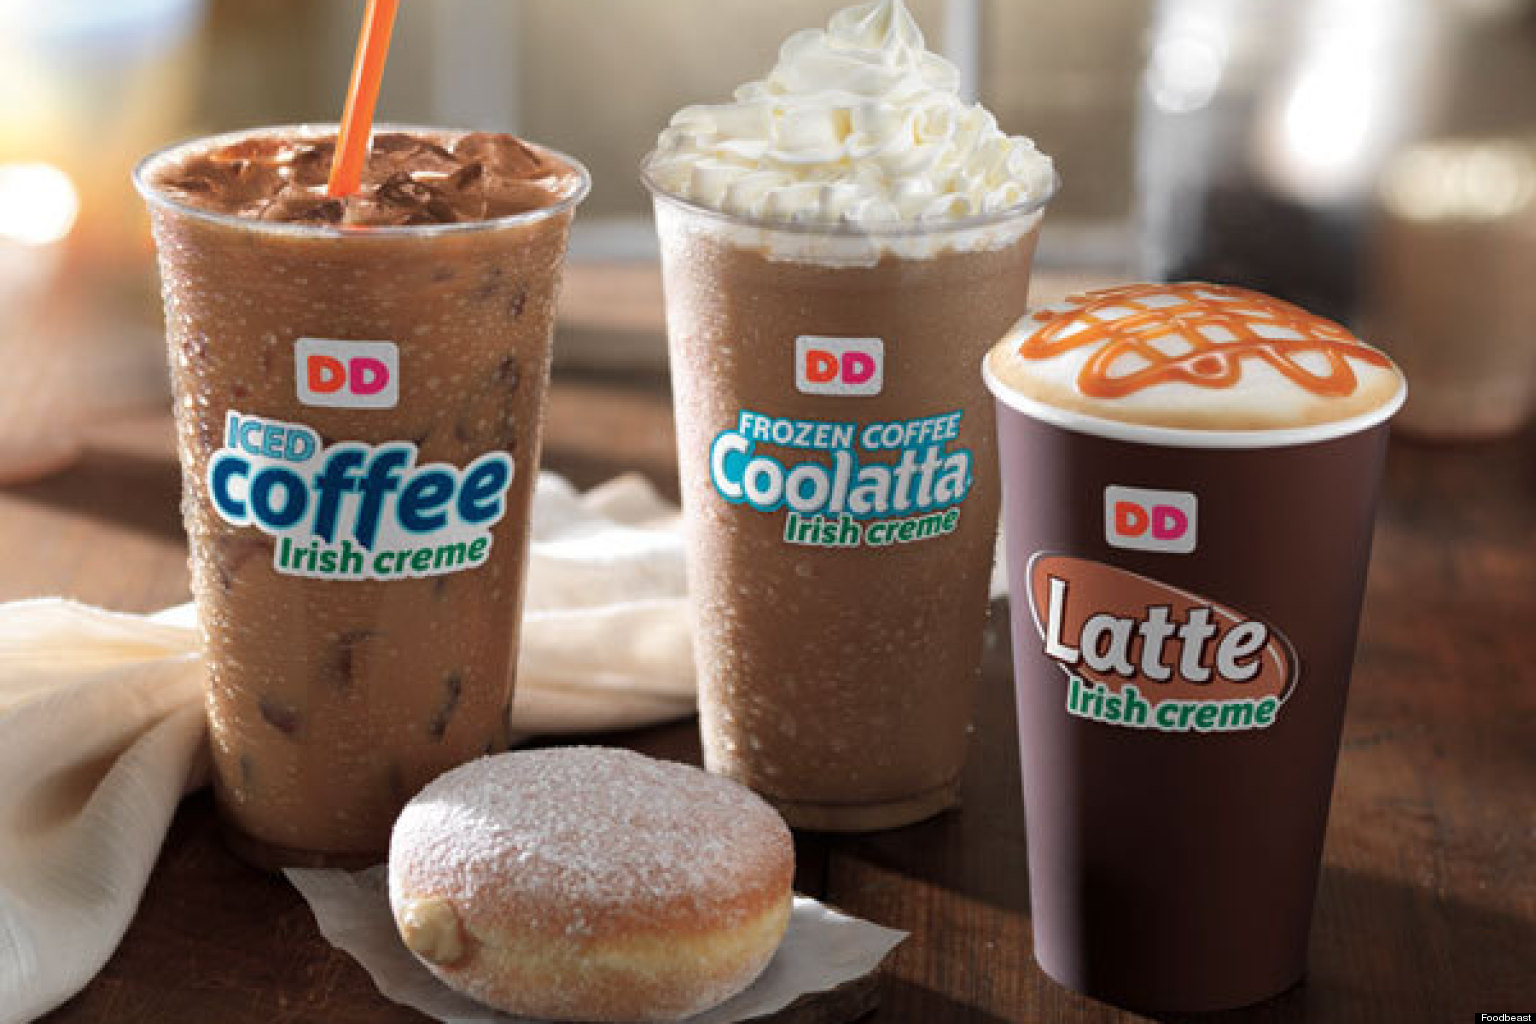 This is what the new Dunkin' Donuts stores will look like